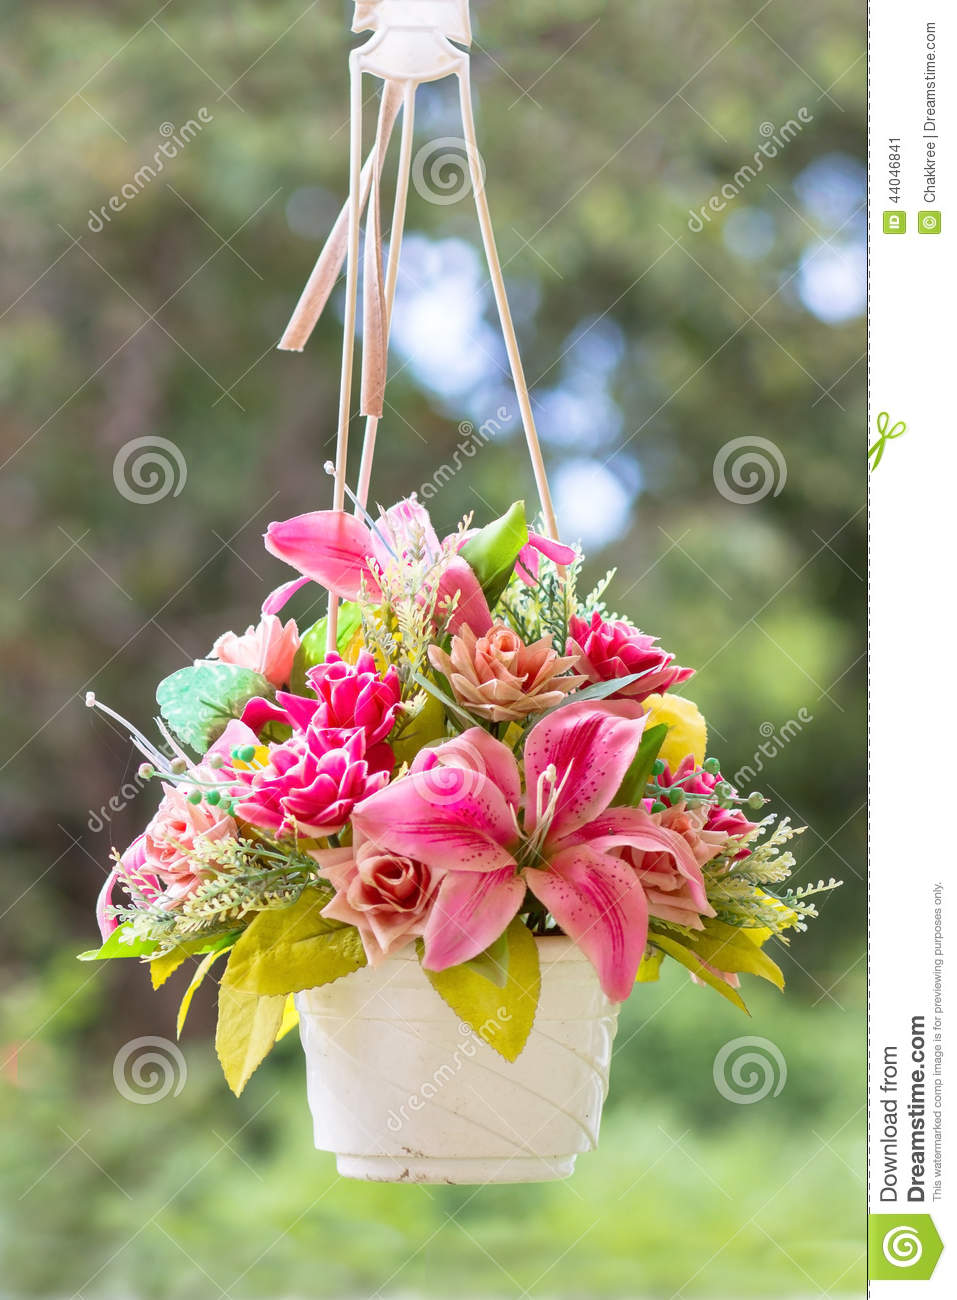 hanging flower vase and buty stock image image of bloom blooming